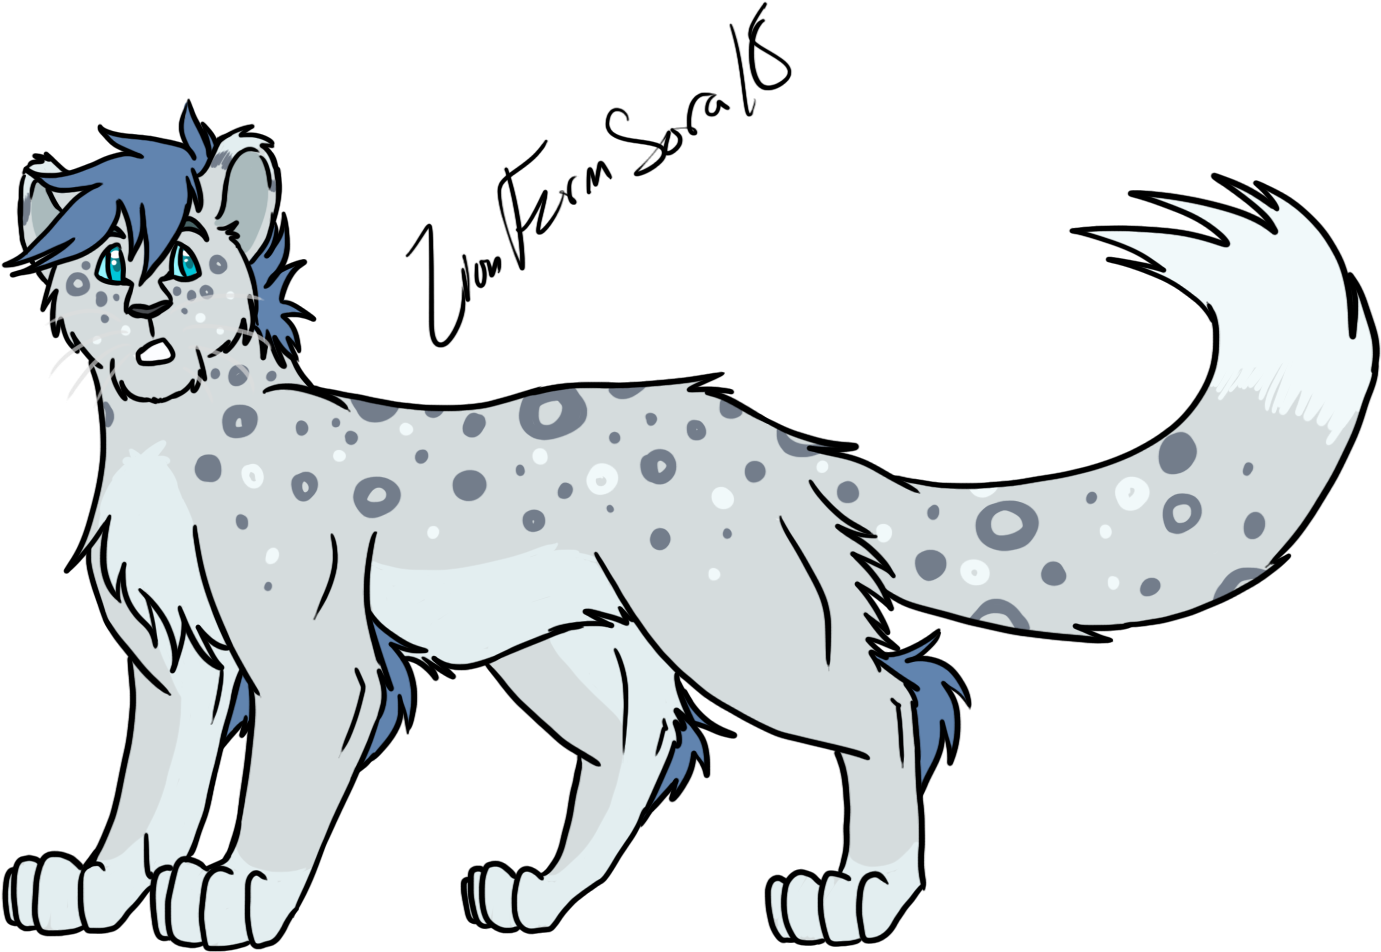 Download Hd Design Trade W Call Of The Wild Snow Leopard Fan Art Transparent Png Image Nicepng Com